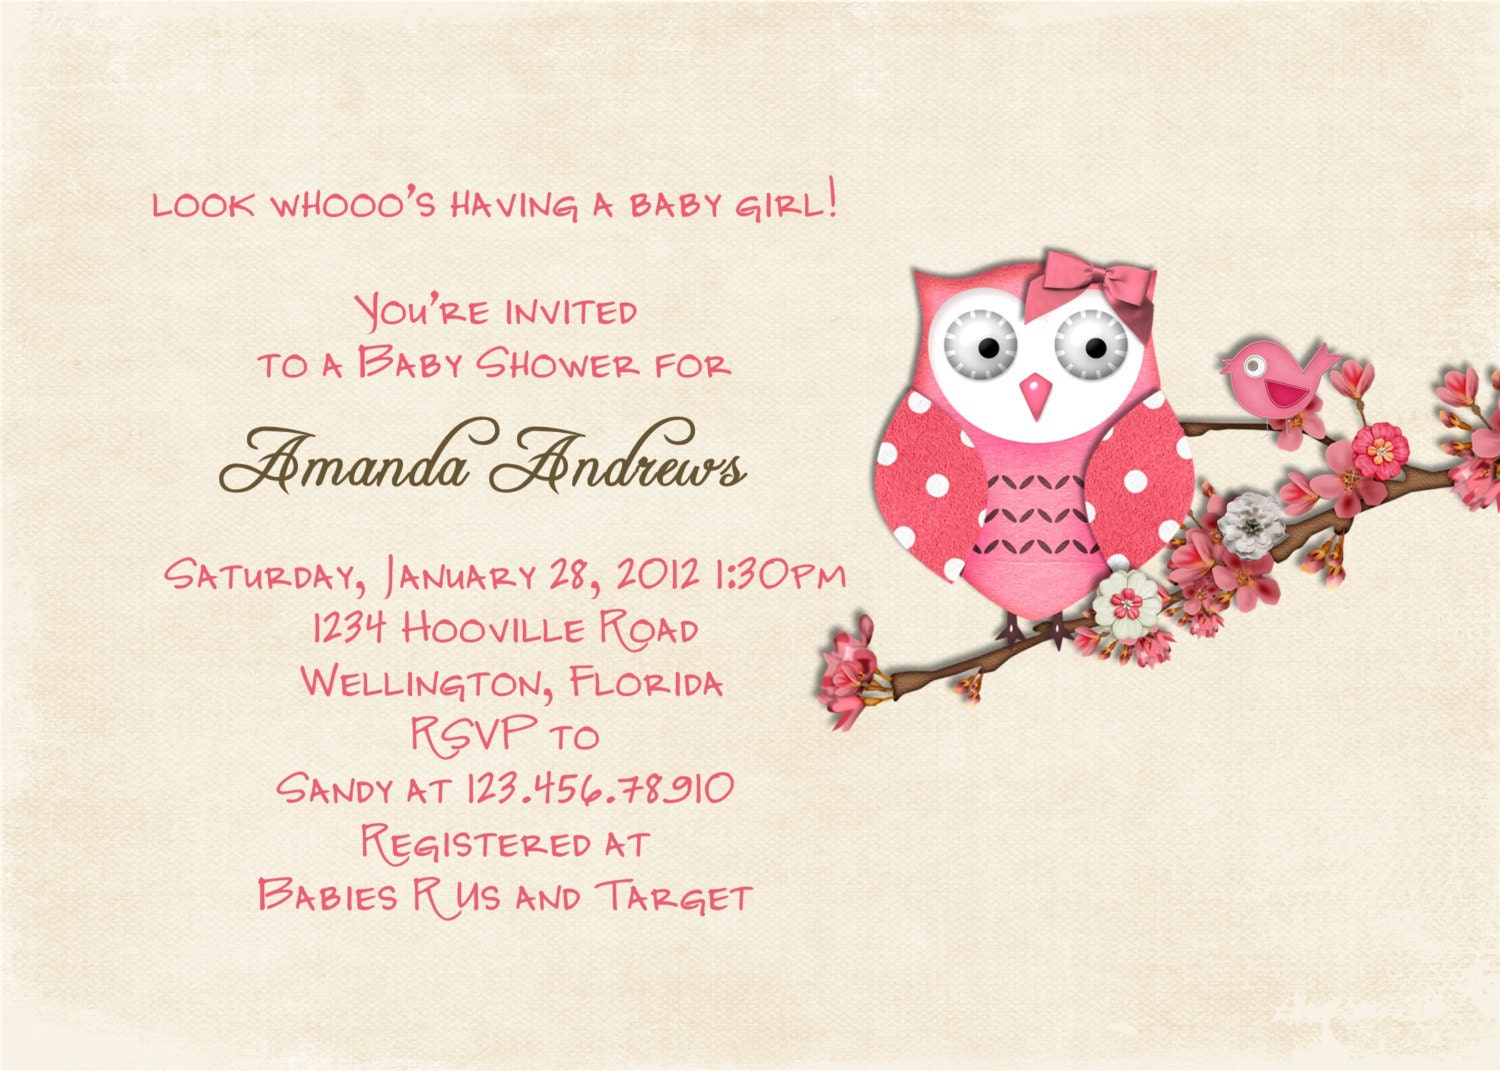 Owls Invitations is great invitations example